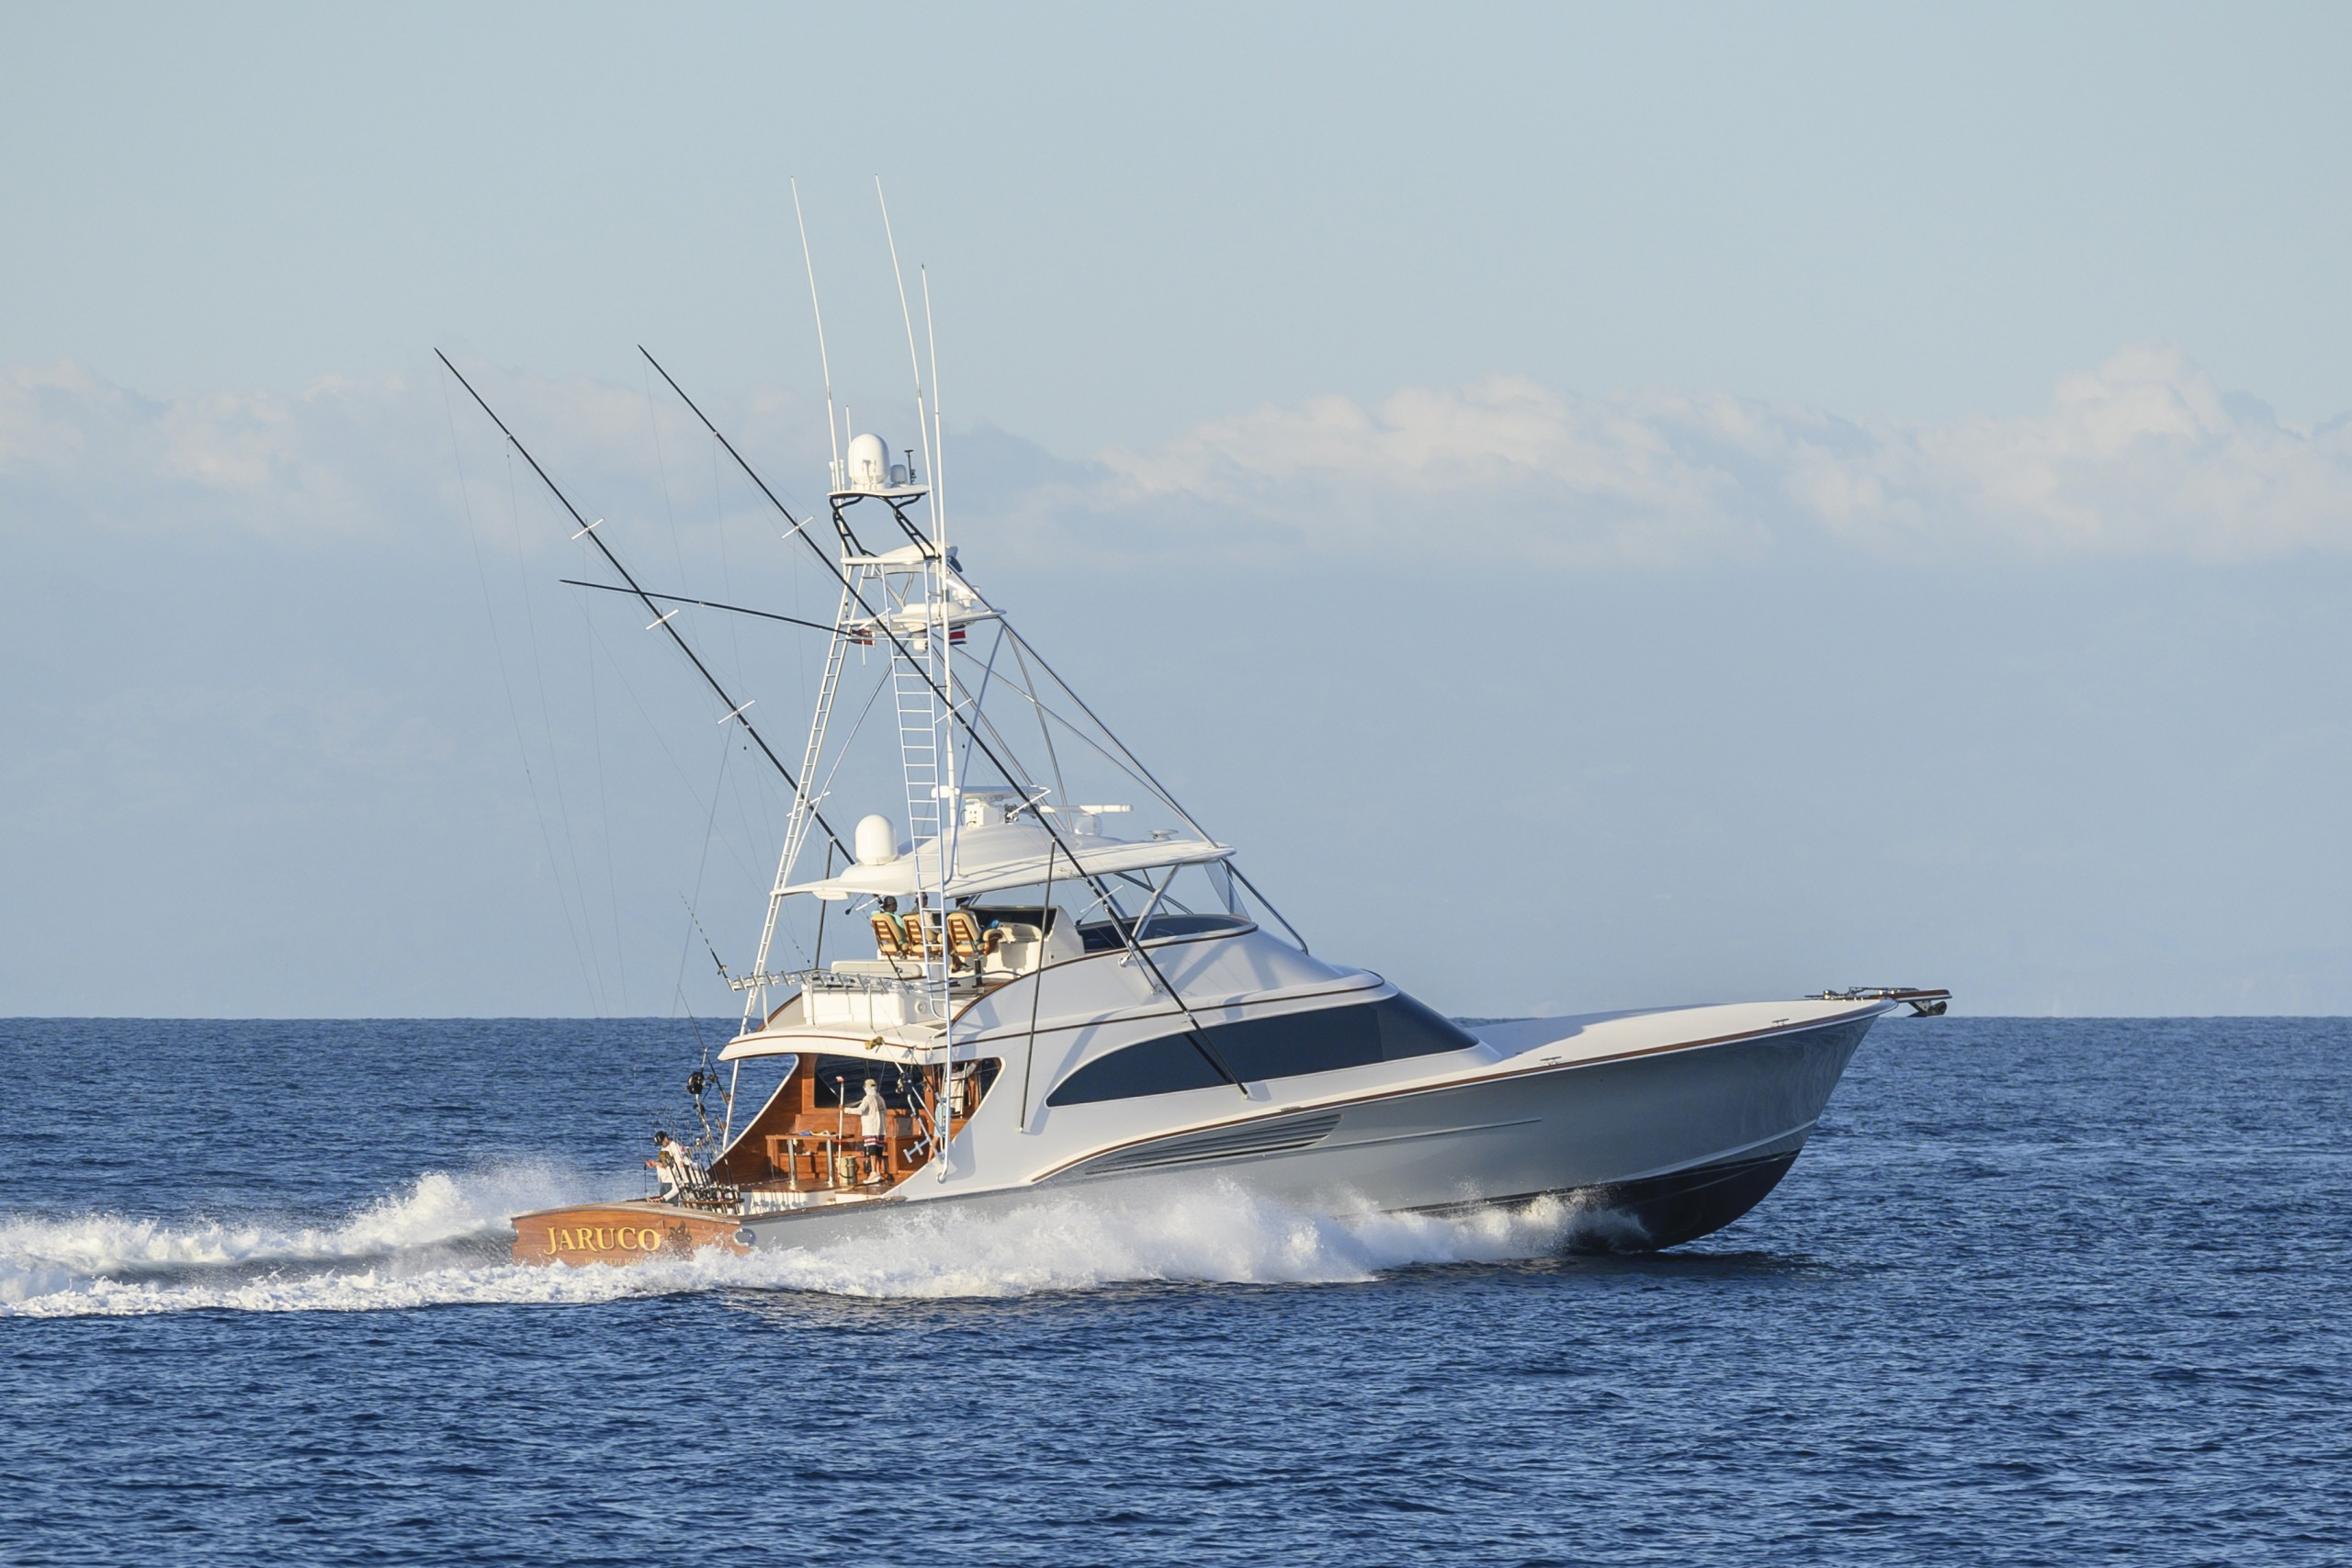 90' Jarrett Bay sportfish running on the open ocean